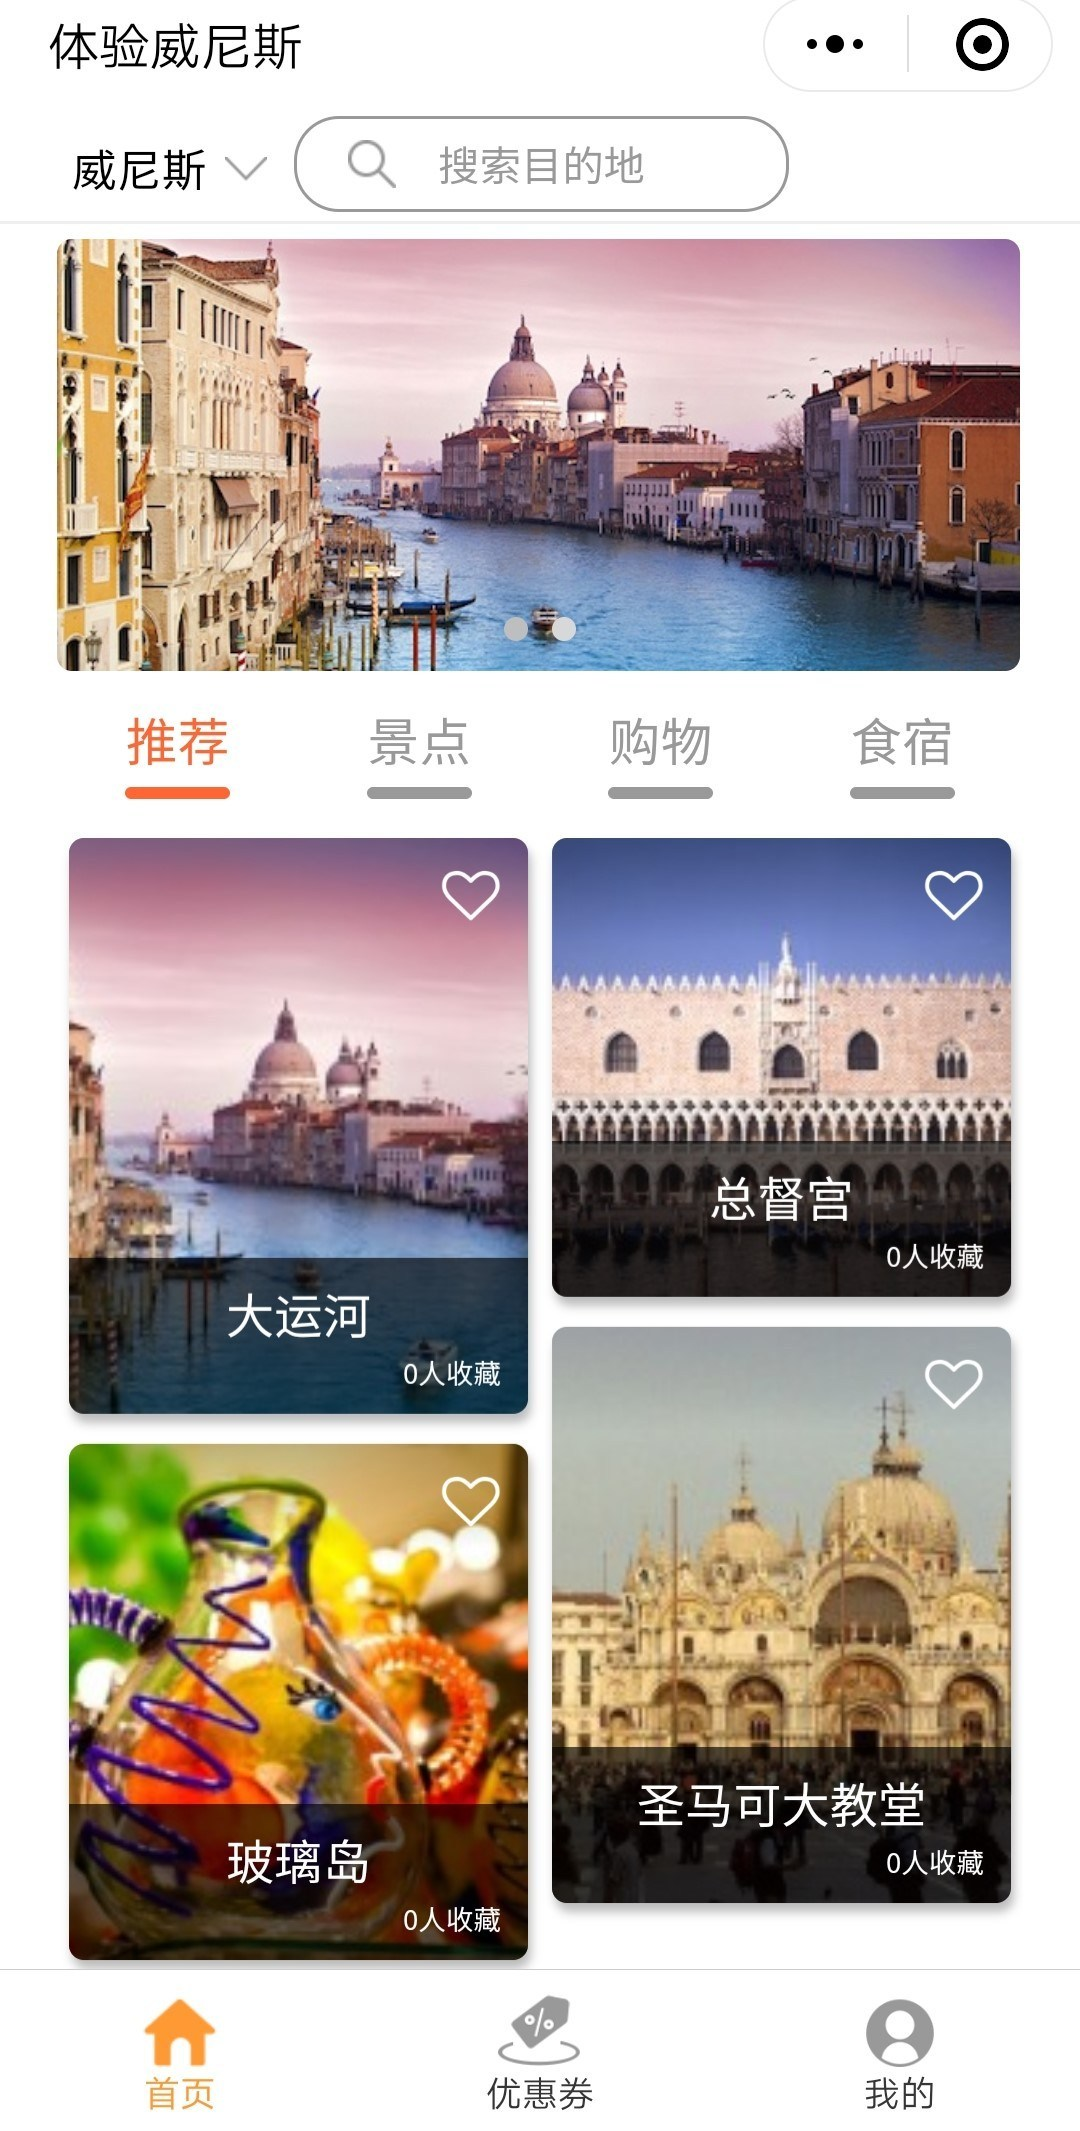 Venice Tourism Wechat Mini-Program - WeChat Travel Experience venice - EuroPass